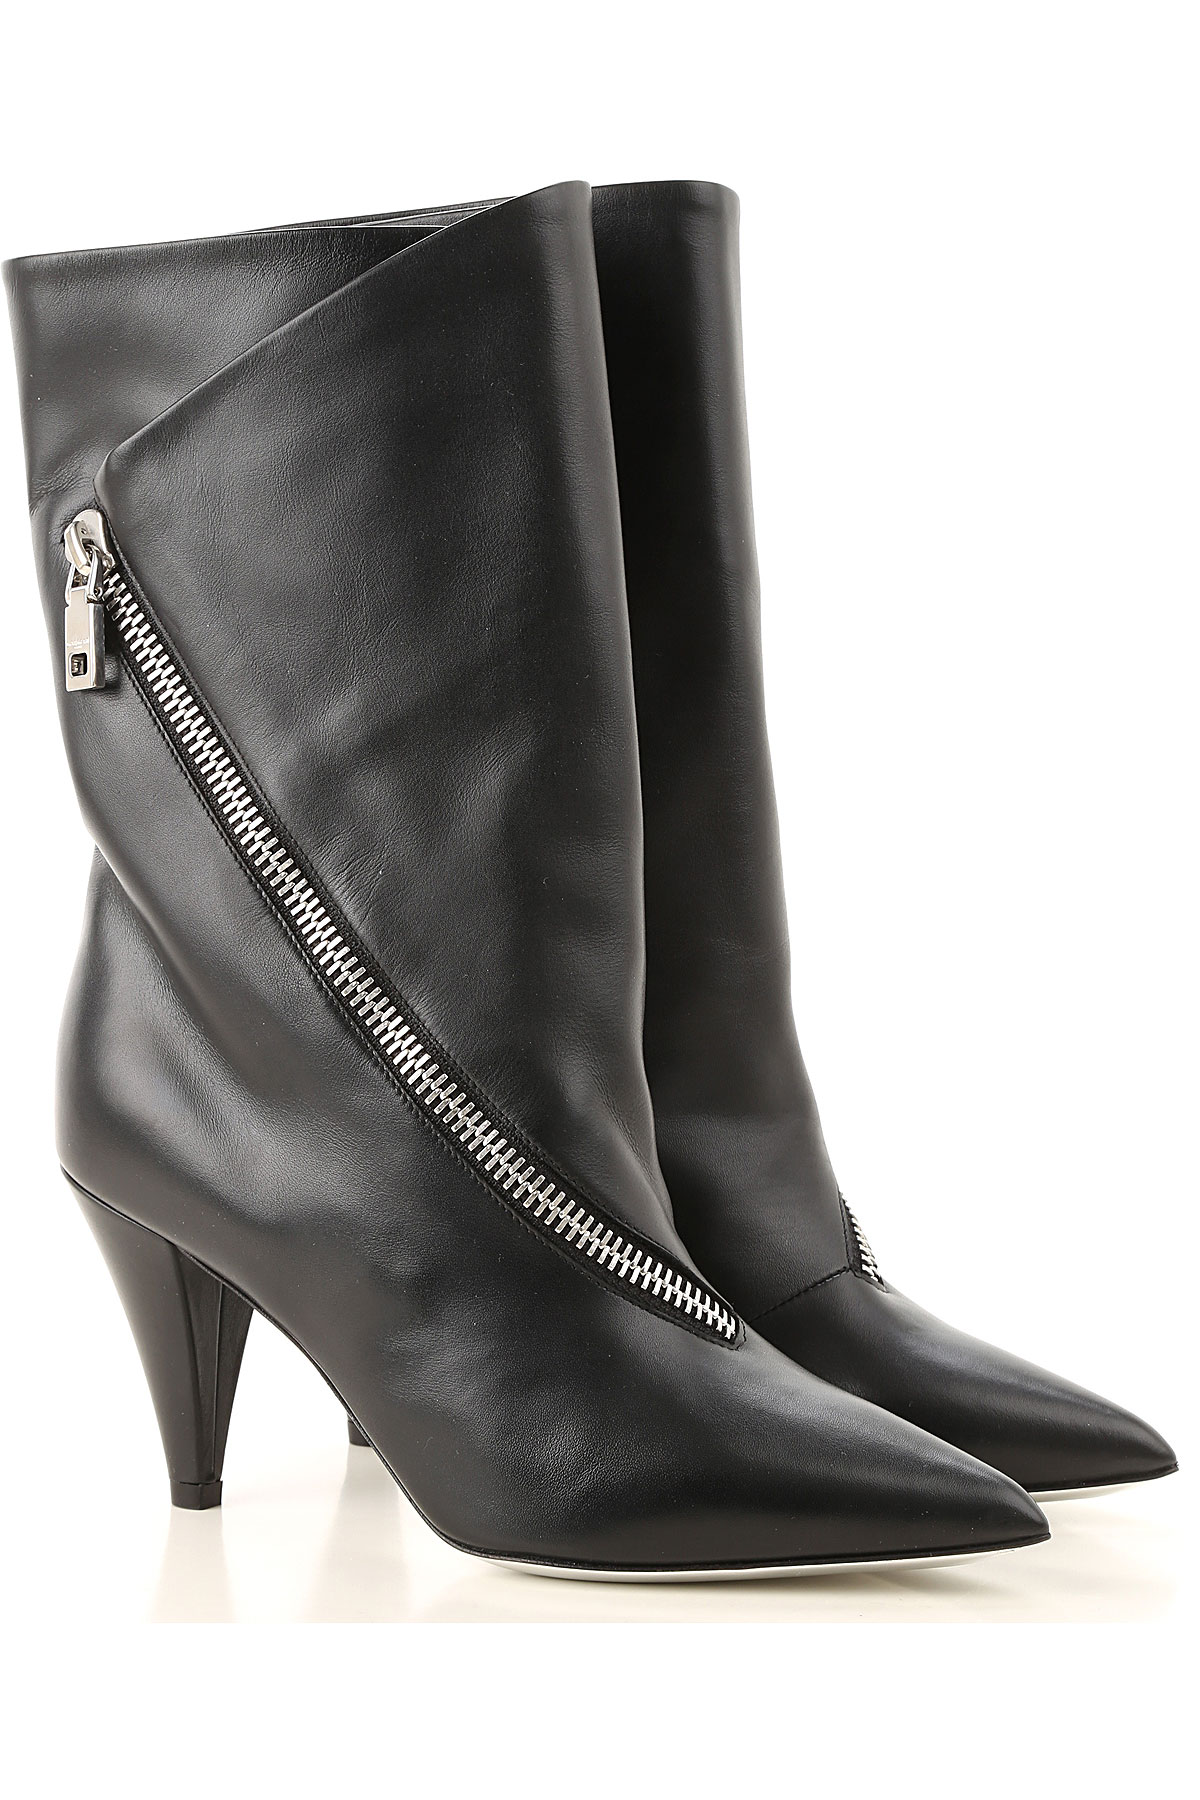 Givenchy Boots for Women, Booties On Sale in Outlet, Black, Nappa Leather, 2019, 10 6 7 8 9